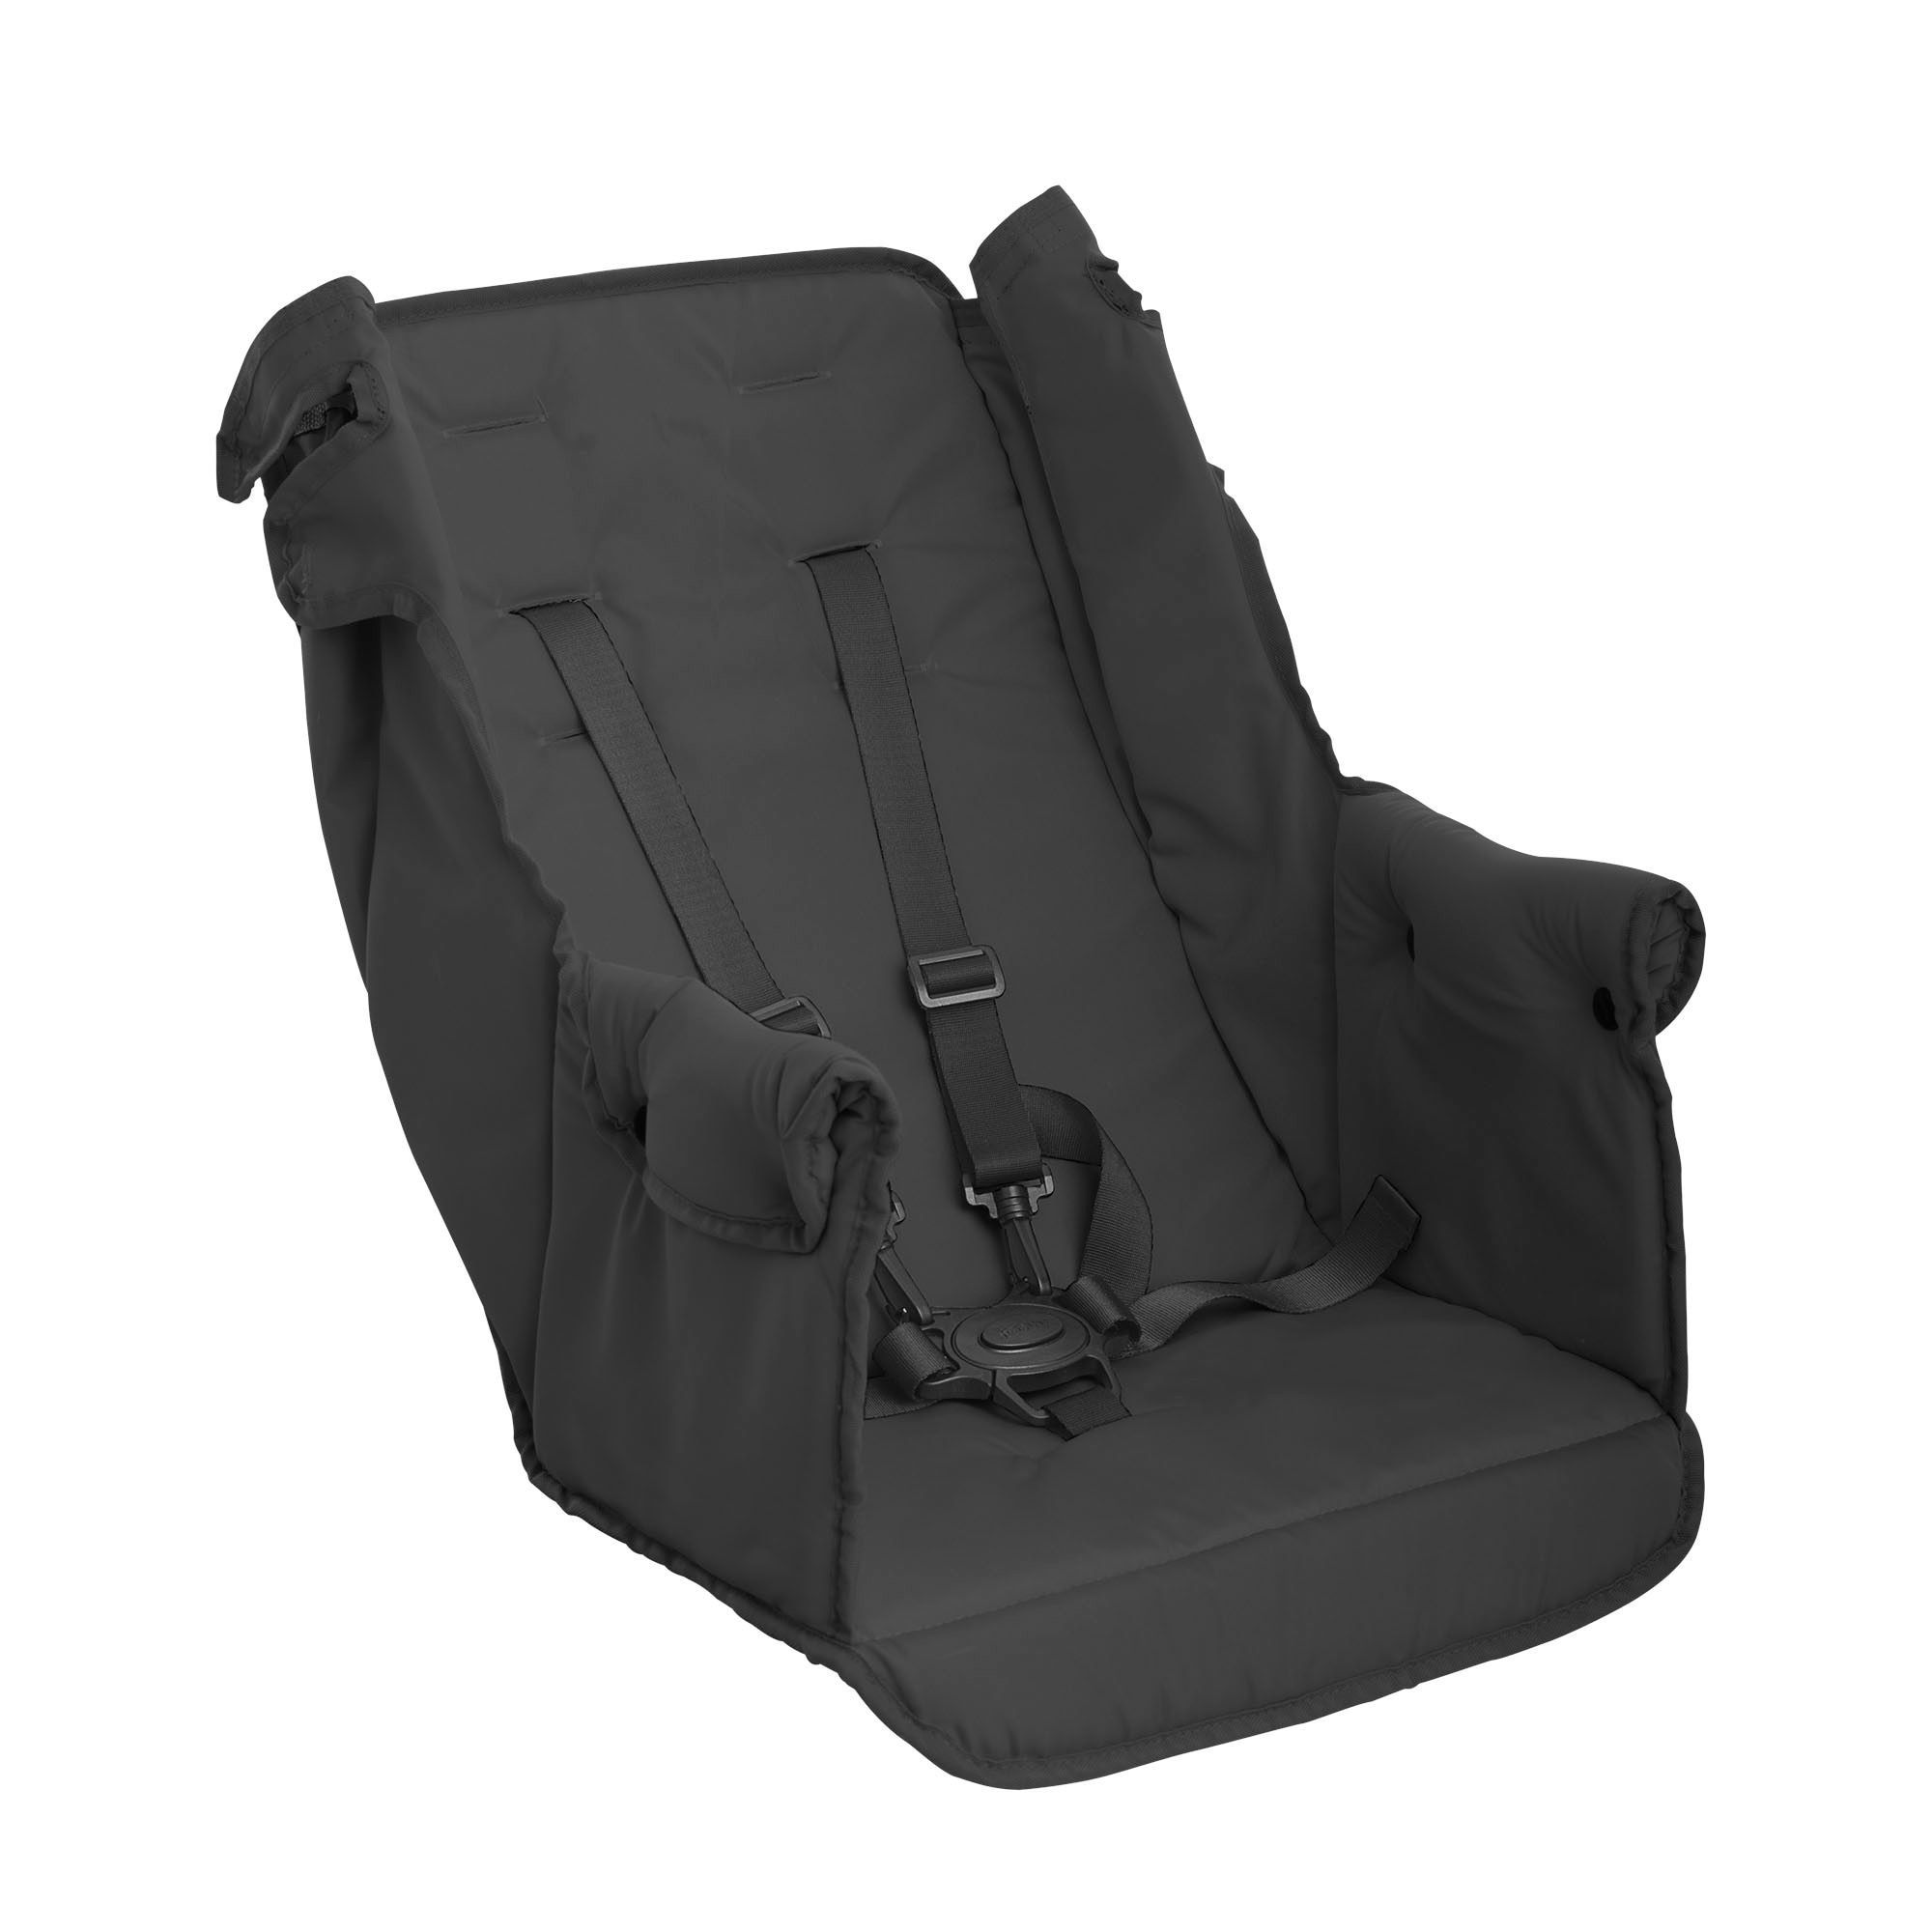 Caboose Sit and Stand Stroller Rear Seat Rear seat